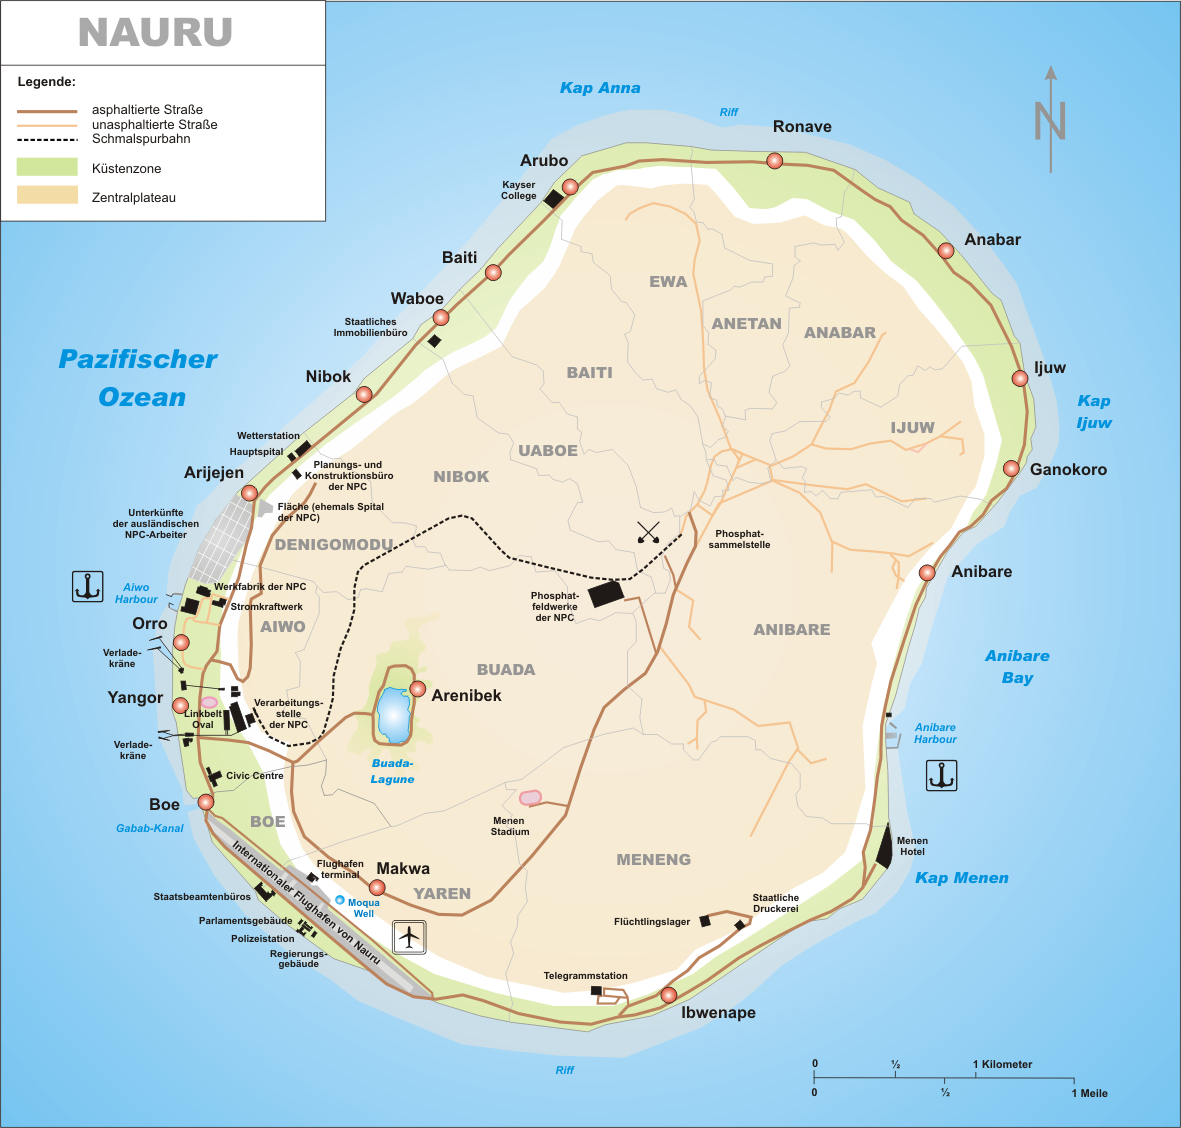 Nauru Road Map